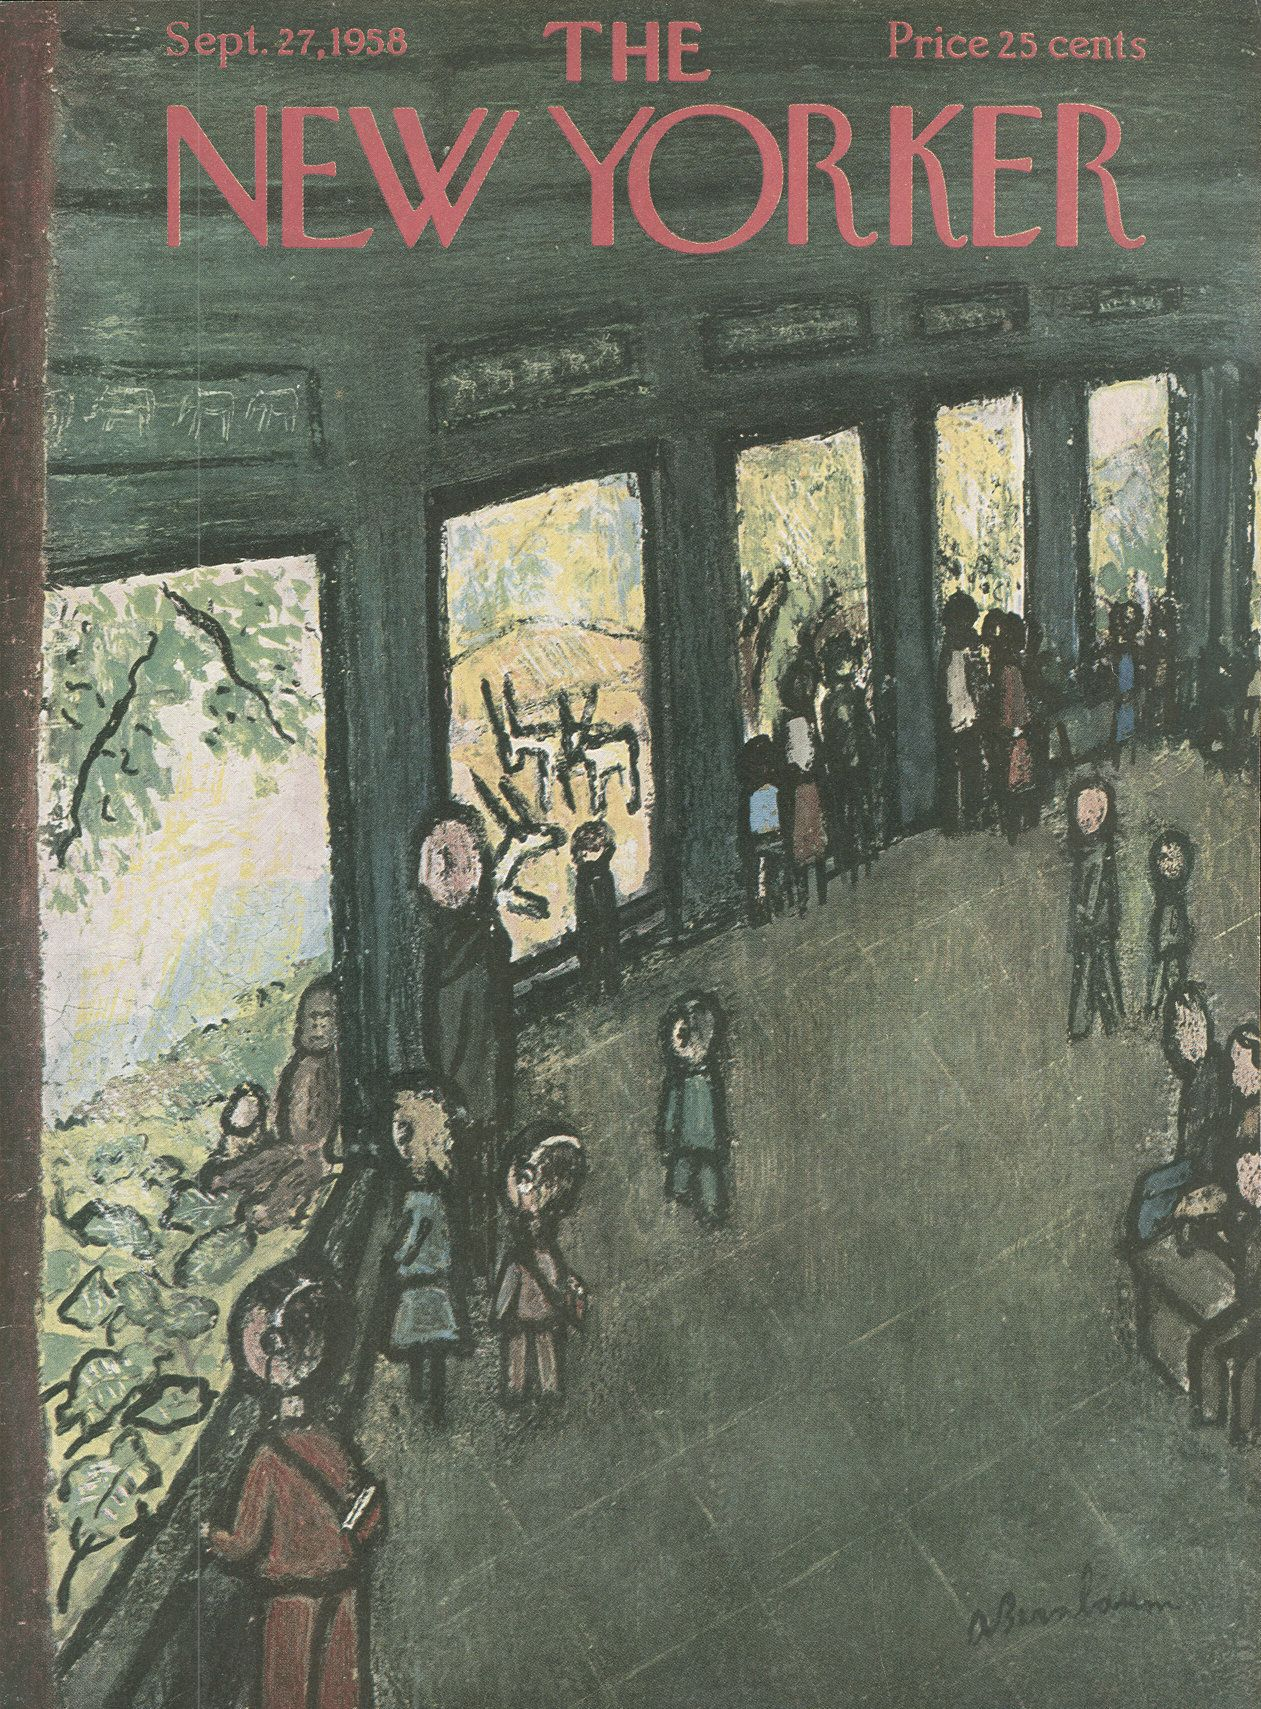 The New Yorker - Saturday, September 27, 1958 - Issue # 1754 - Vol. 34 - N° 32 - Cover by : Abe Bimbaum